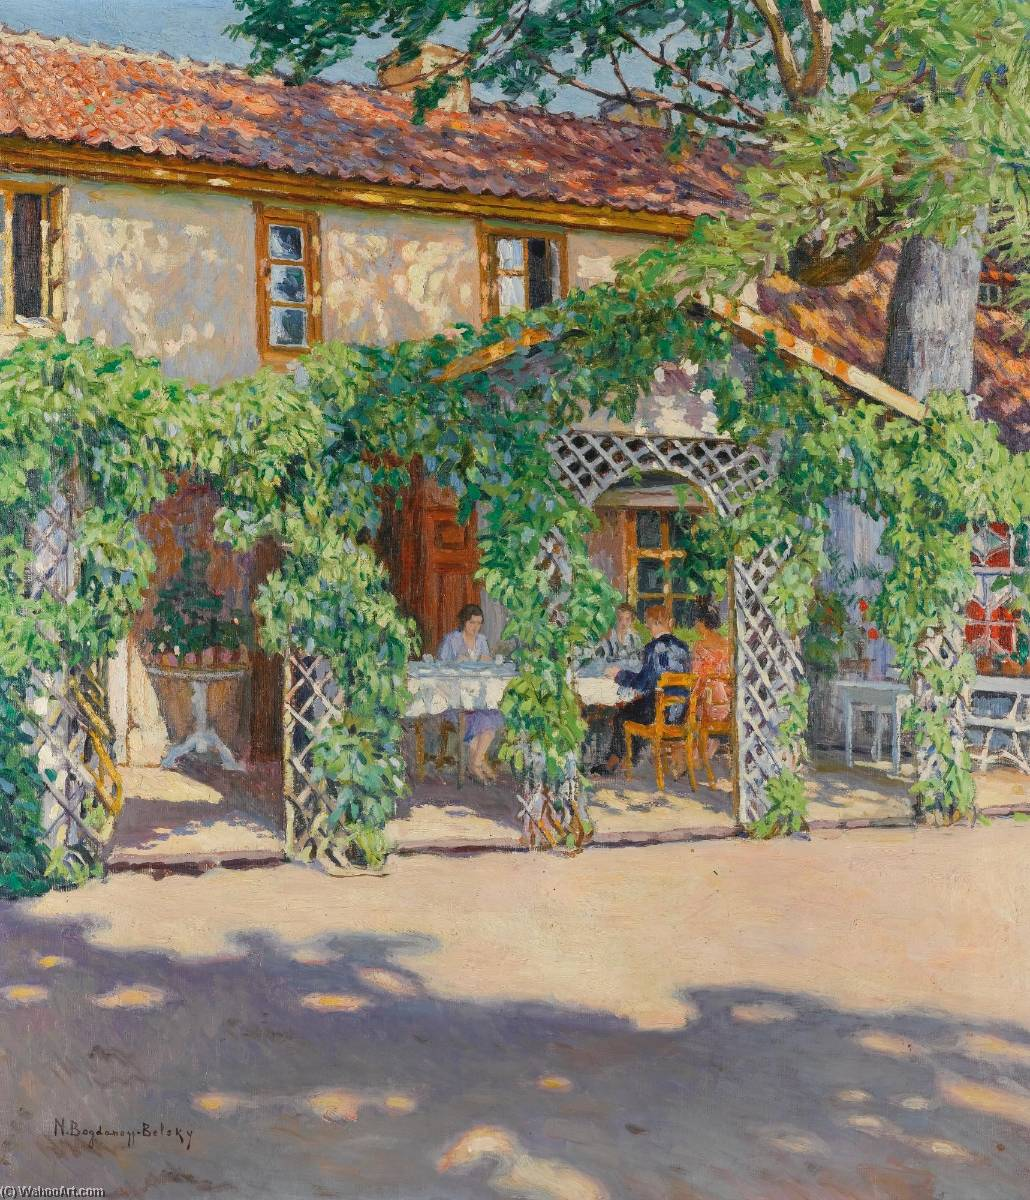 dacha in the summer, Oil On Canvas by Nikolai Petrovich Bogdanov Belsky